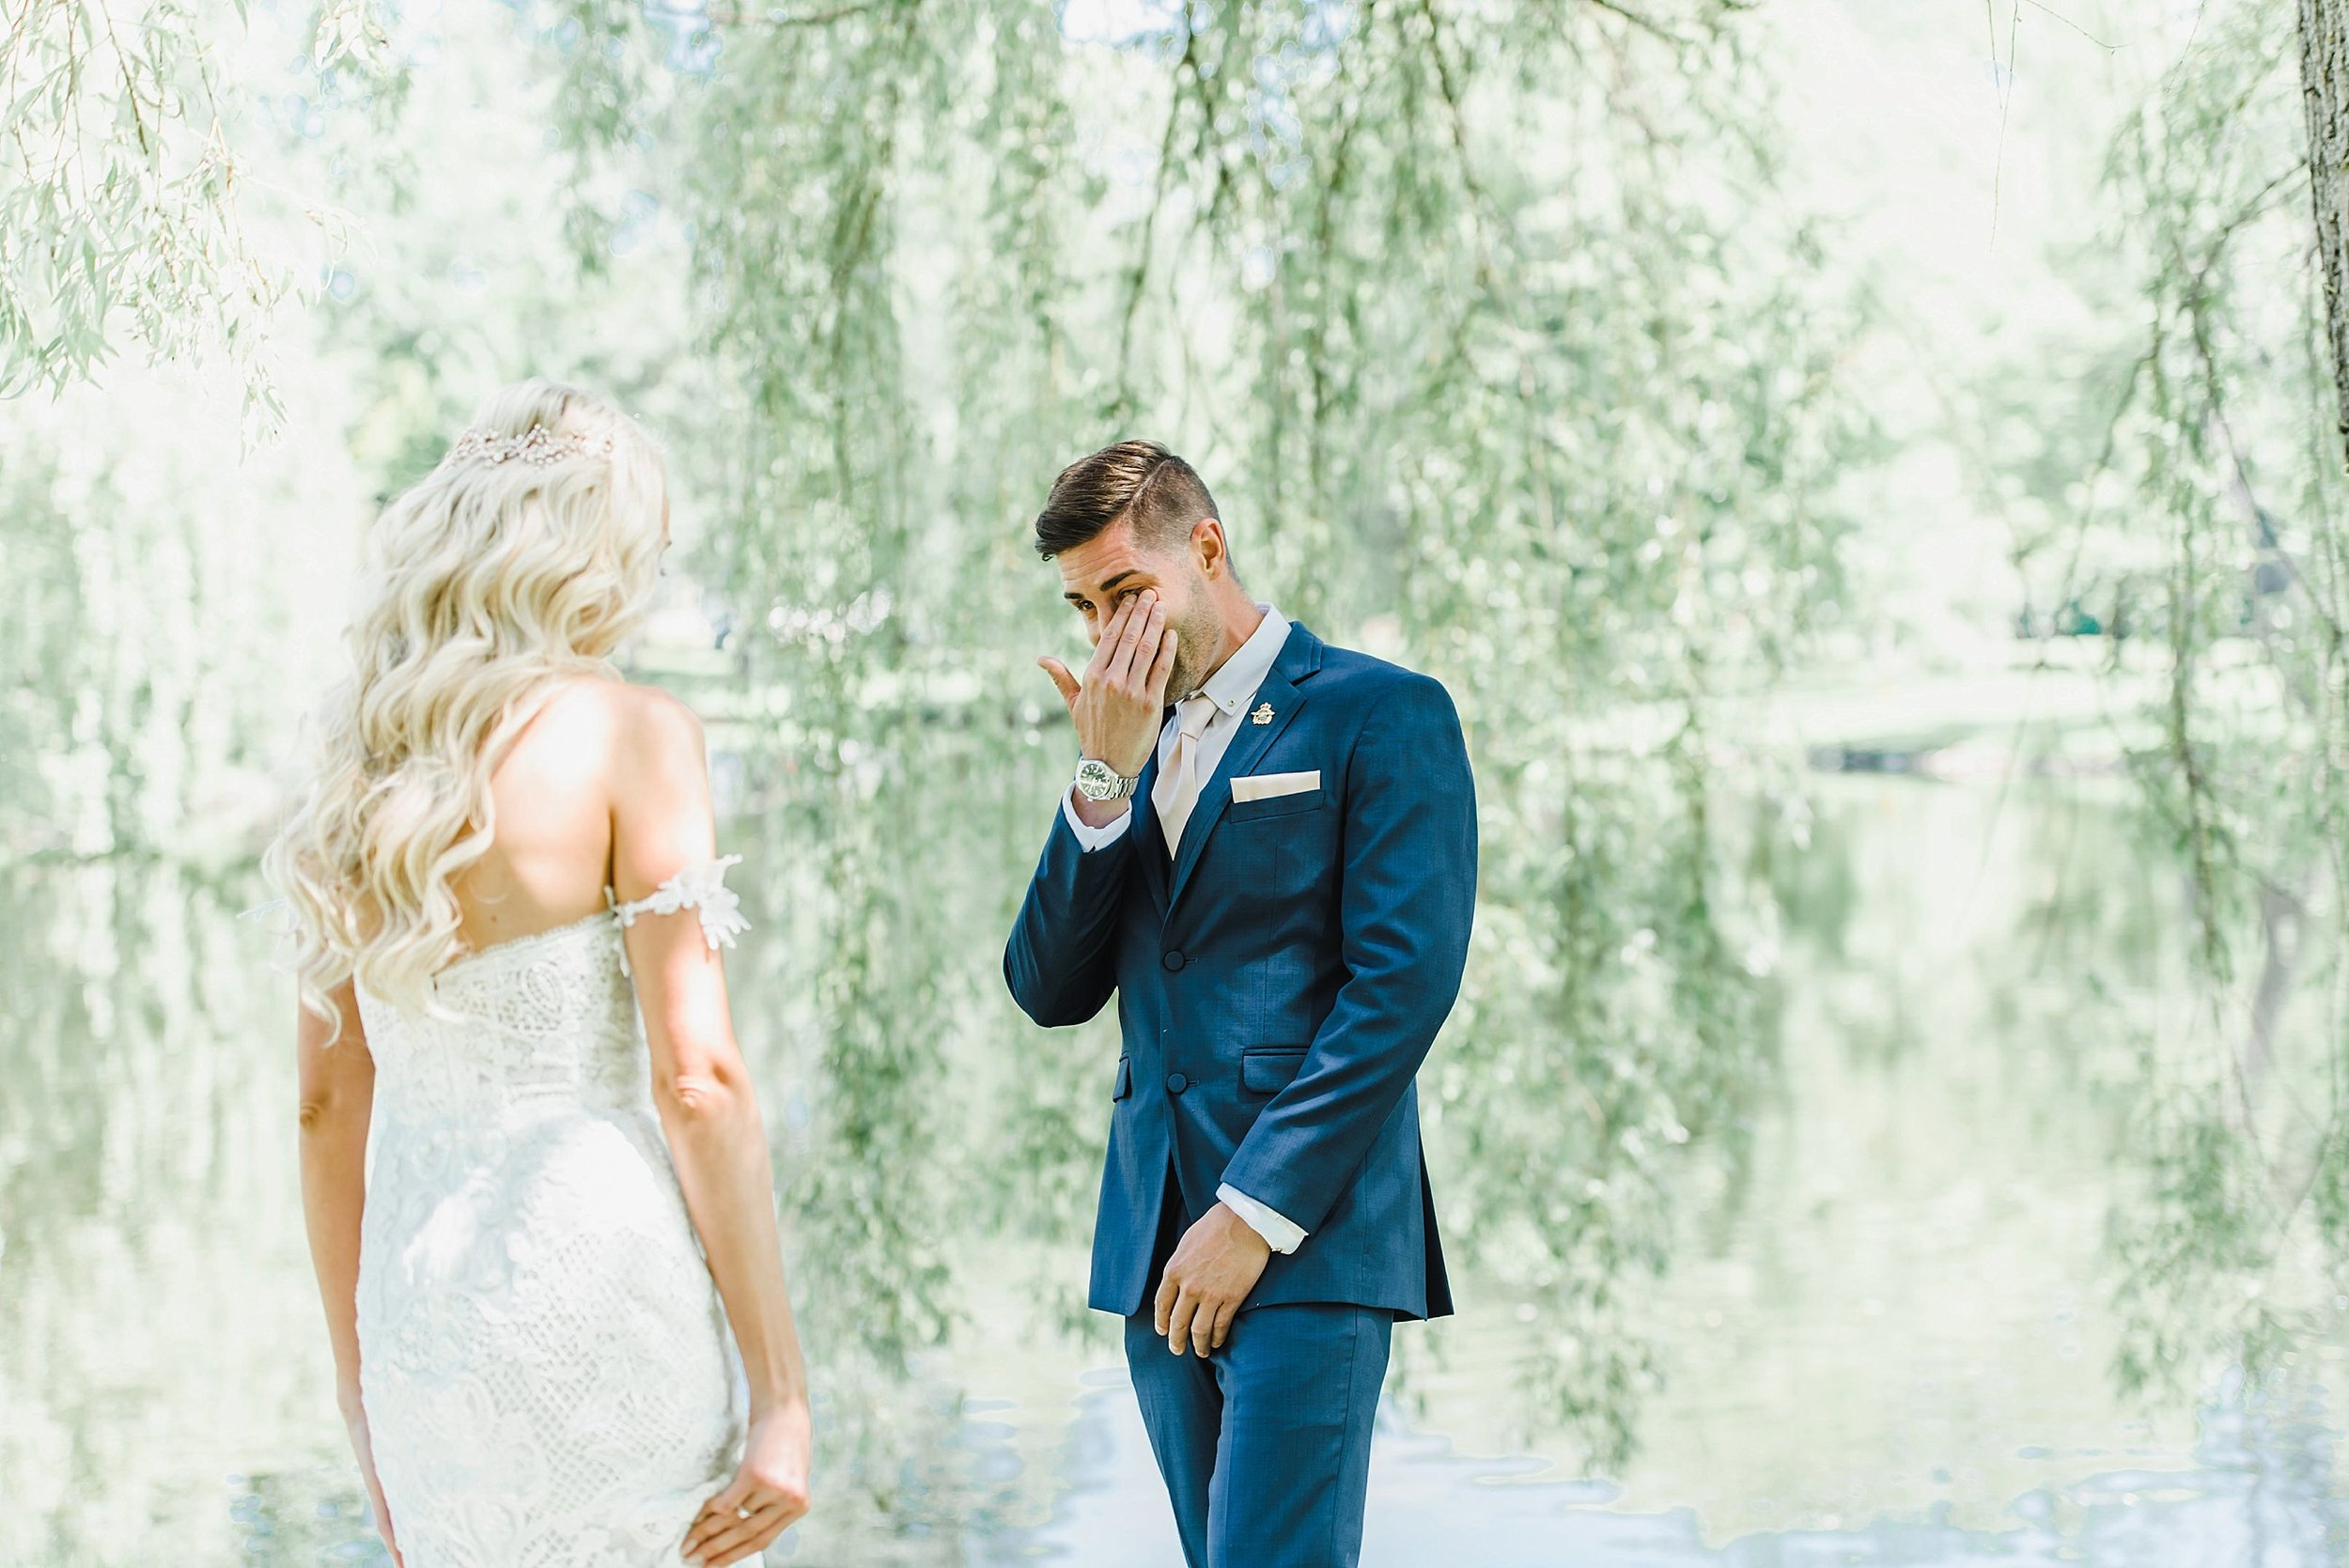 When we first met Chris and Kaylea, Chris told us that he was not the crying type.  Lo and behold, the first look got him into tears!